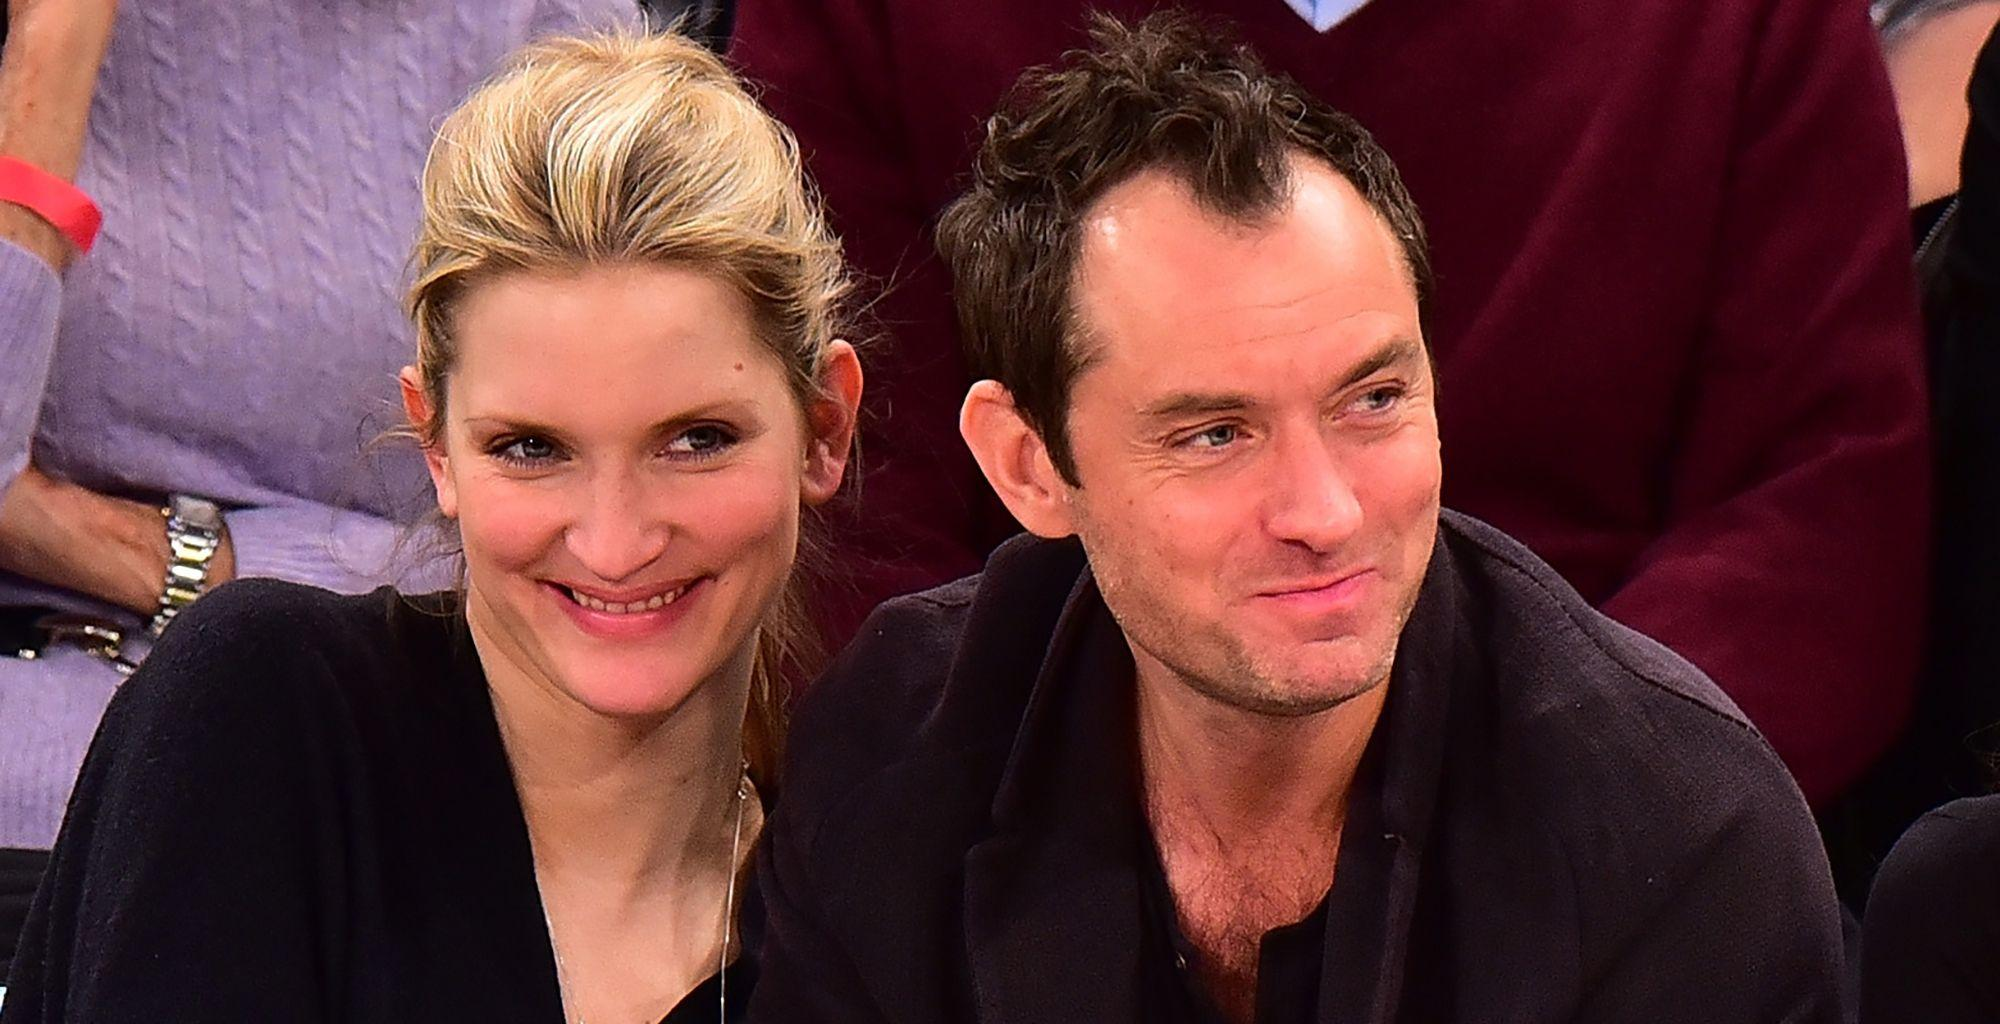 Jude Law And Phillipa Coan Welcome Their First Baby Together - The Actor Is Now A Father Of 6!